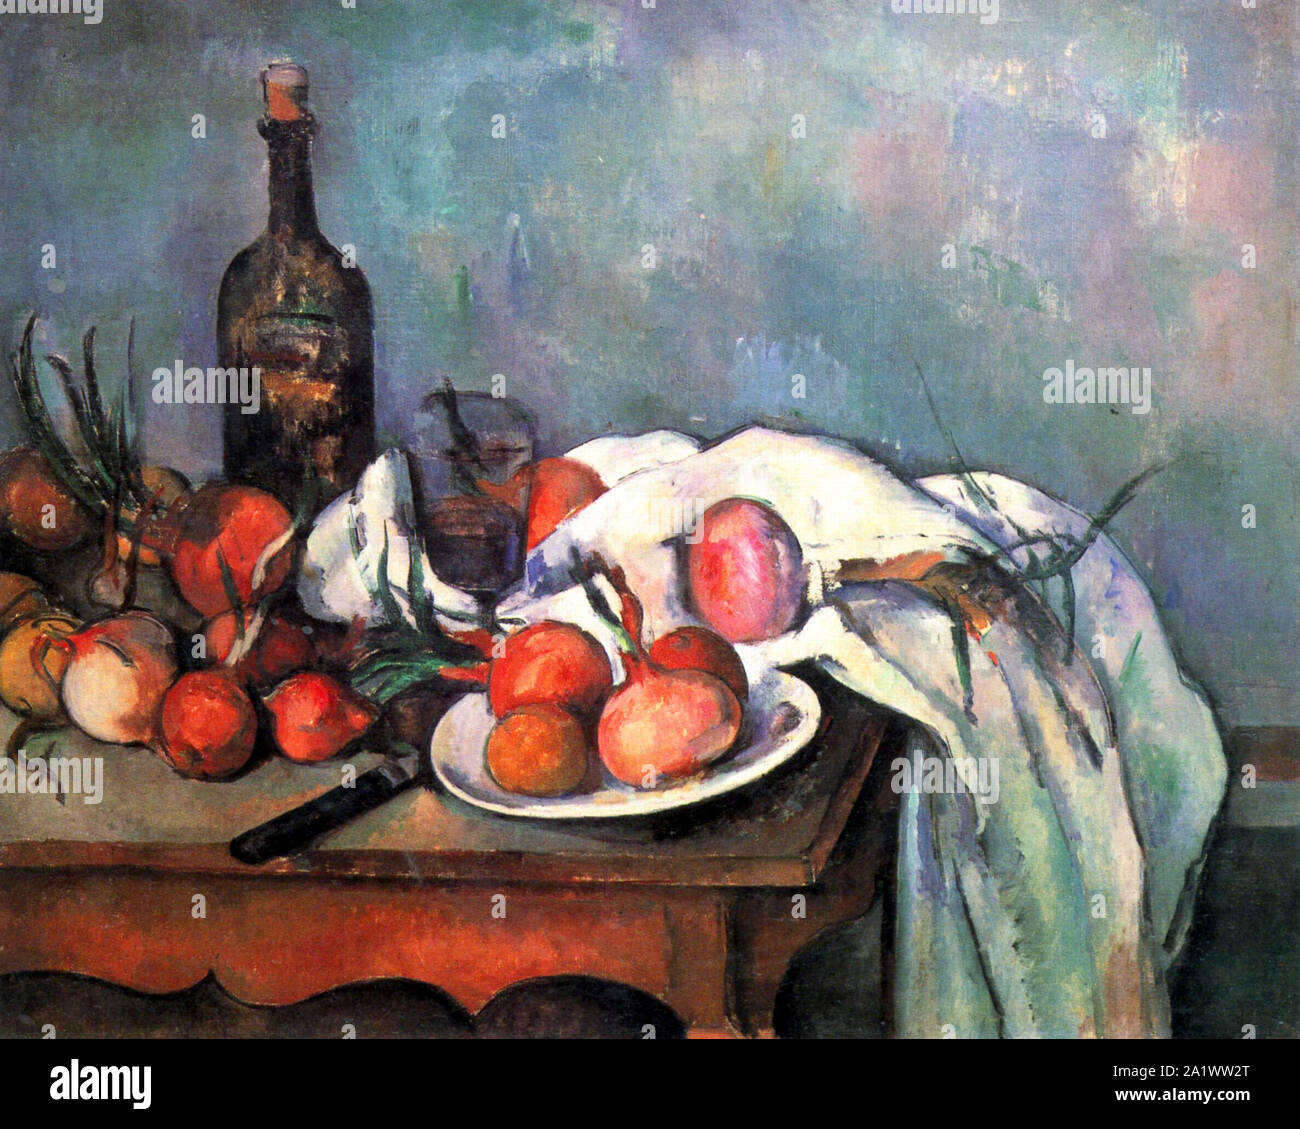 Still Life with Onions by Paul Cézanne Stock Photo